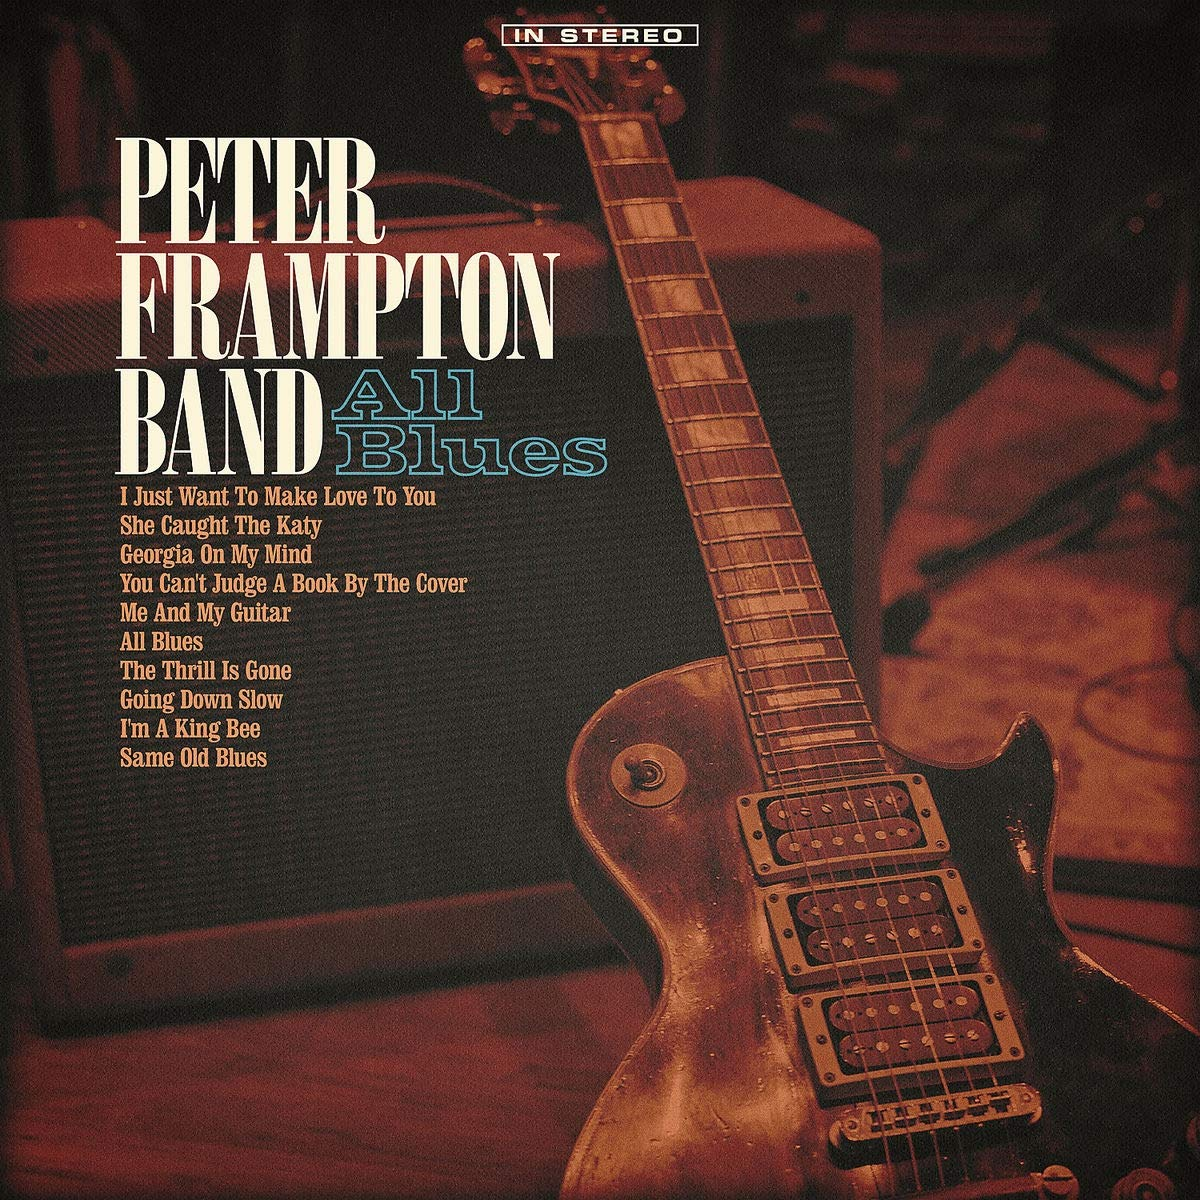 Peter Frampton Band